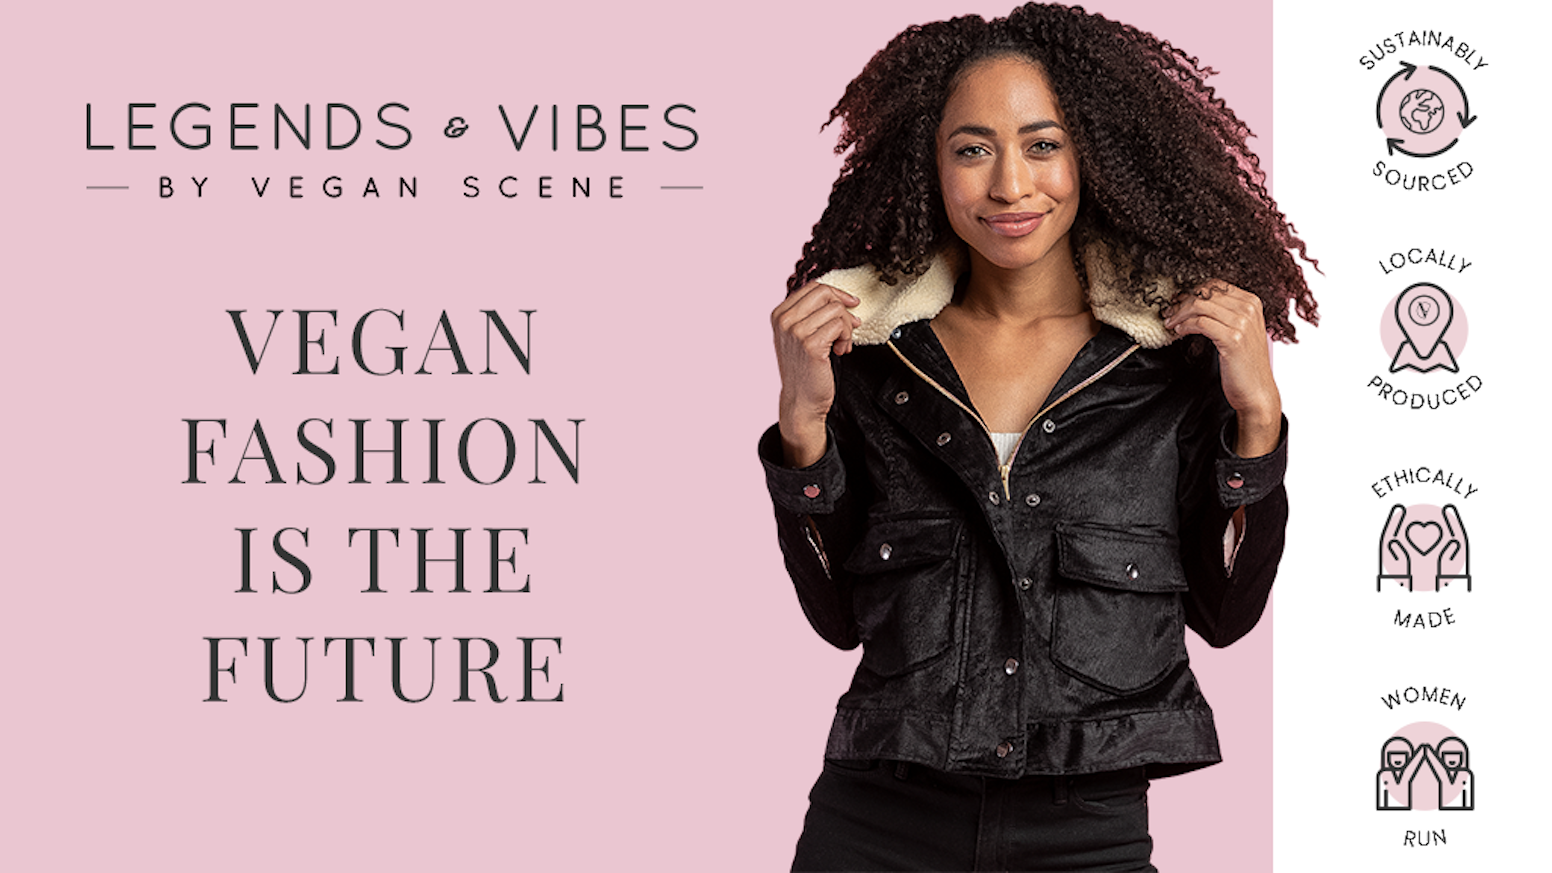 Sustainably sourced, ethically made, vegan fashion label that radiates style, elevates fashion​ and liberates animals.